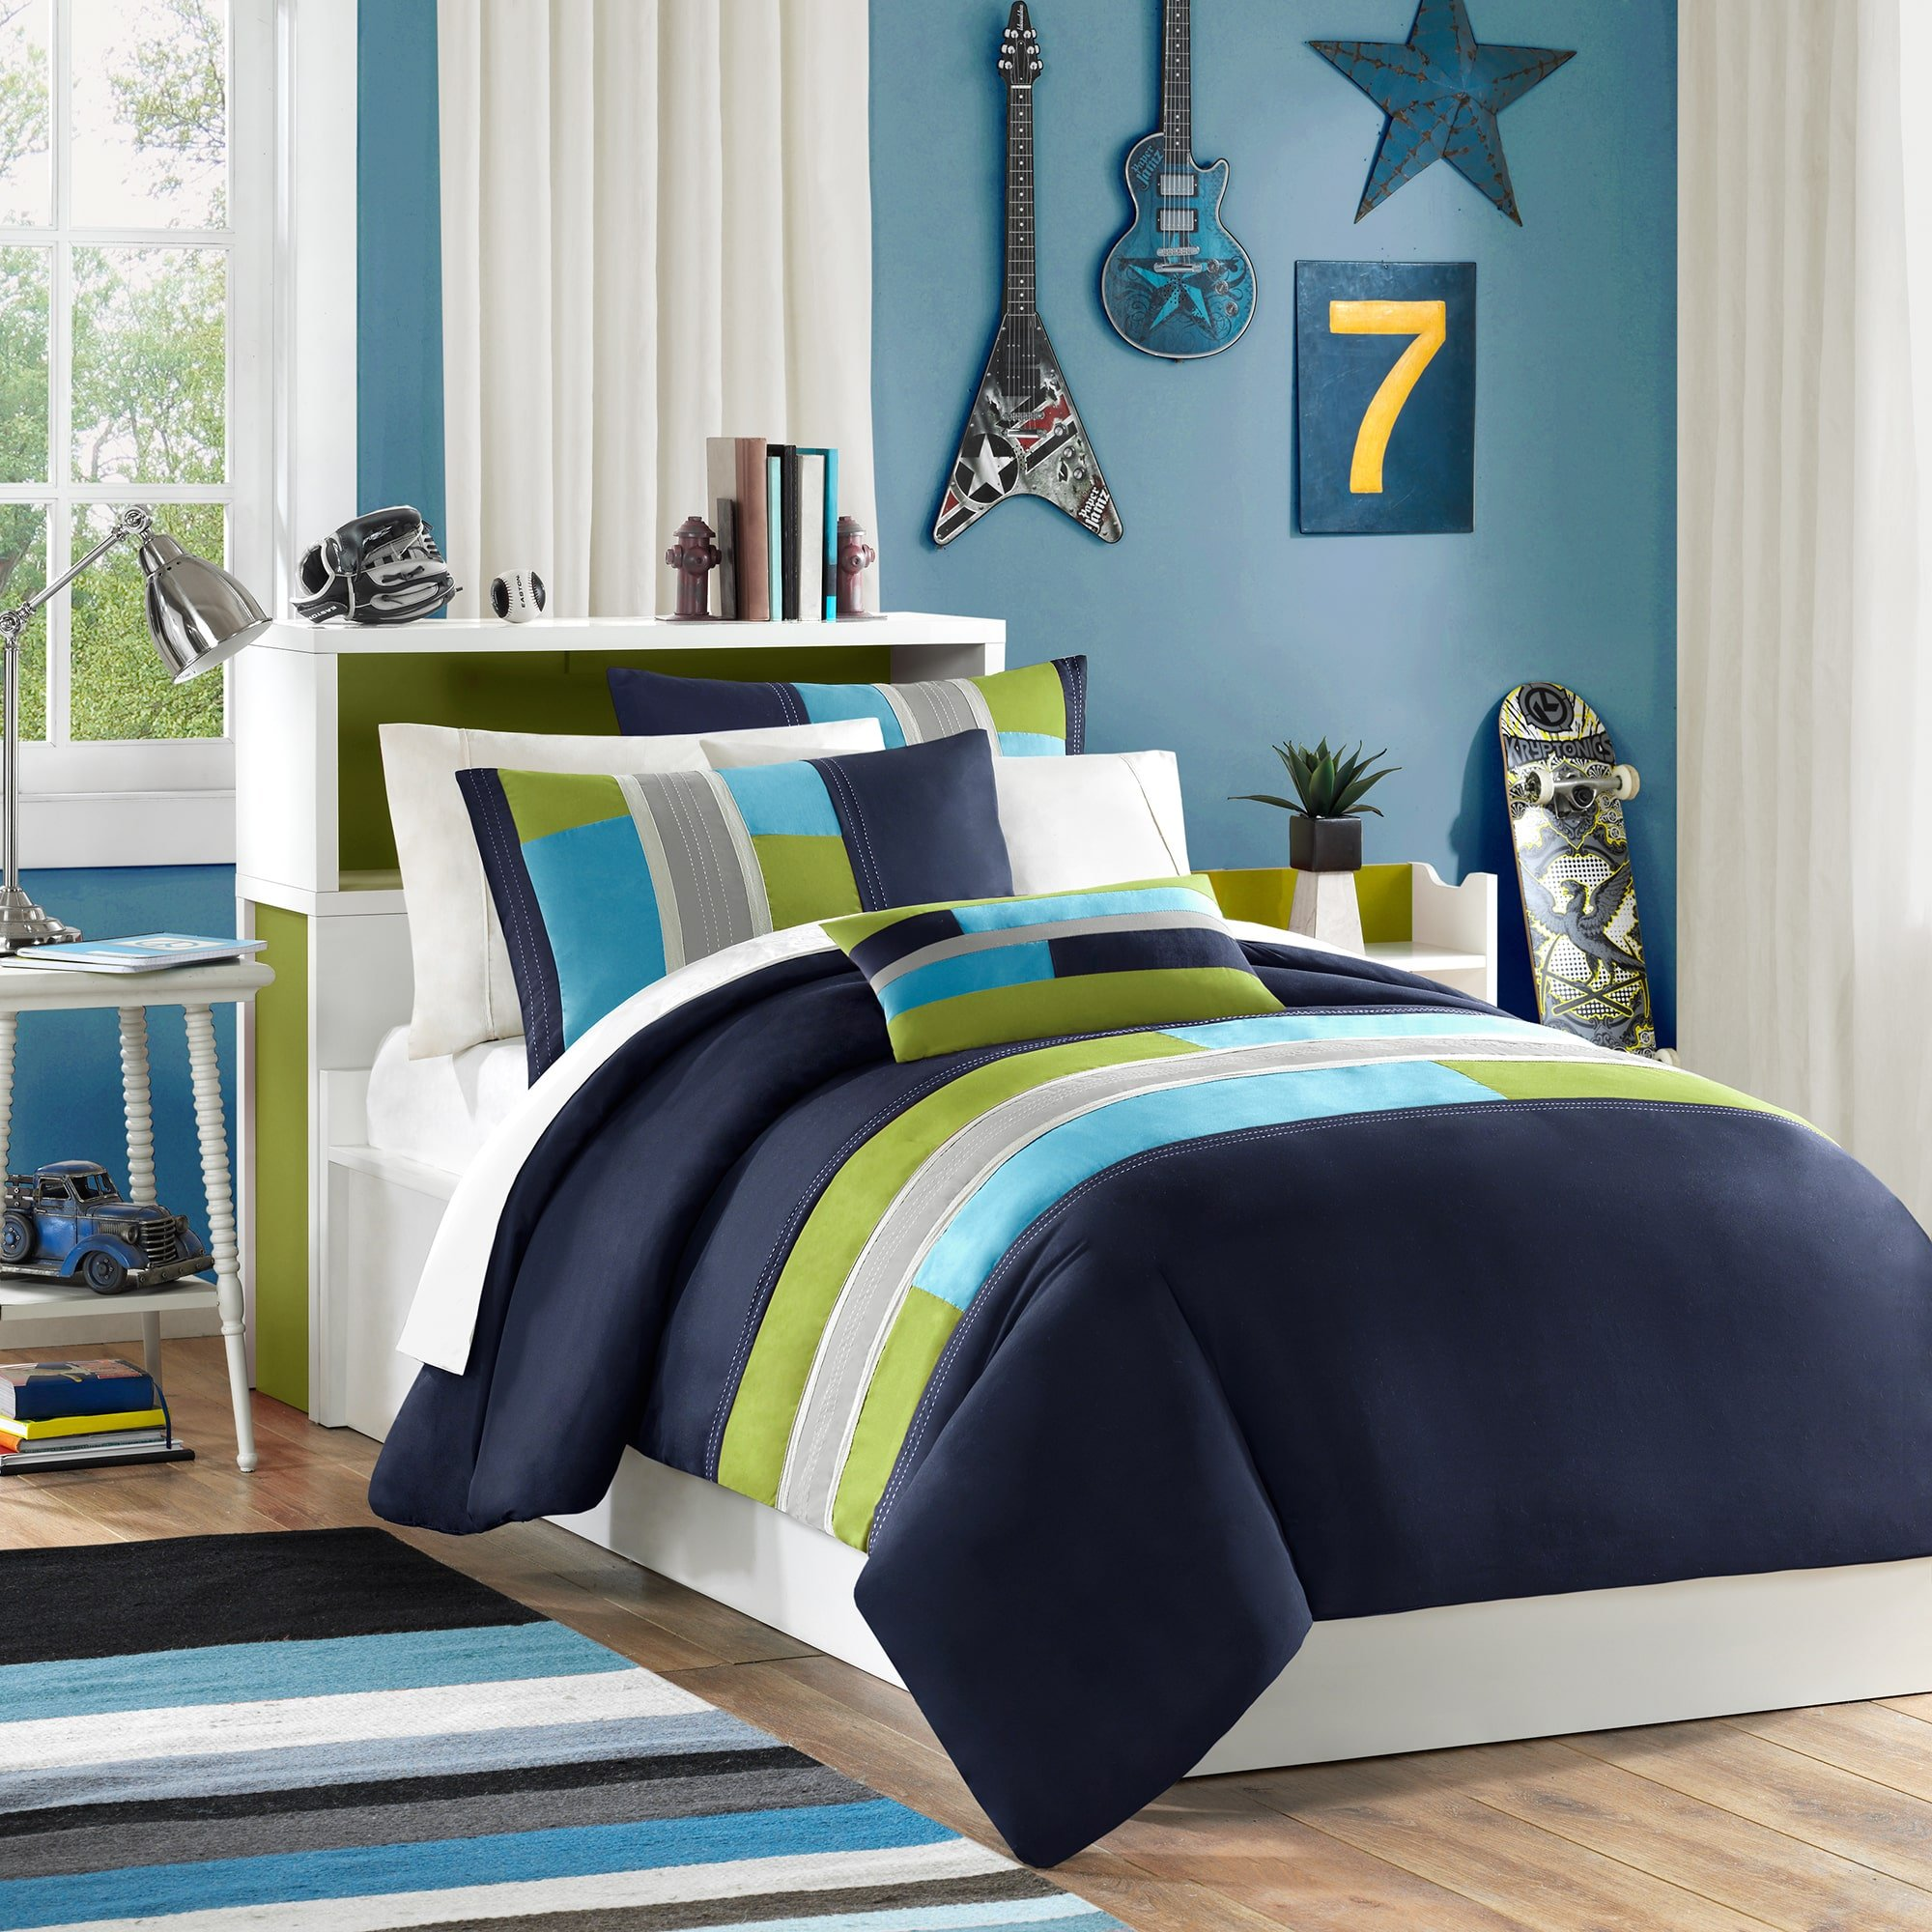 3 Piece Girls Navy Blue Lime Green Maverick Duvet Cover Twin Twin Xl Set, Sky Blue Grey Color Abstract Color Block Pattern Solid Color Kids Bedding, Contemporary Geometric Themed Teen, Polyester